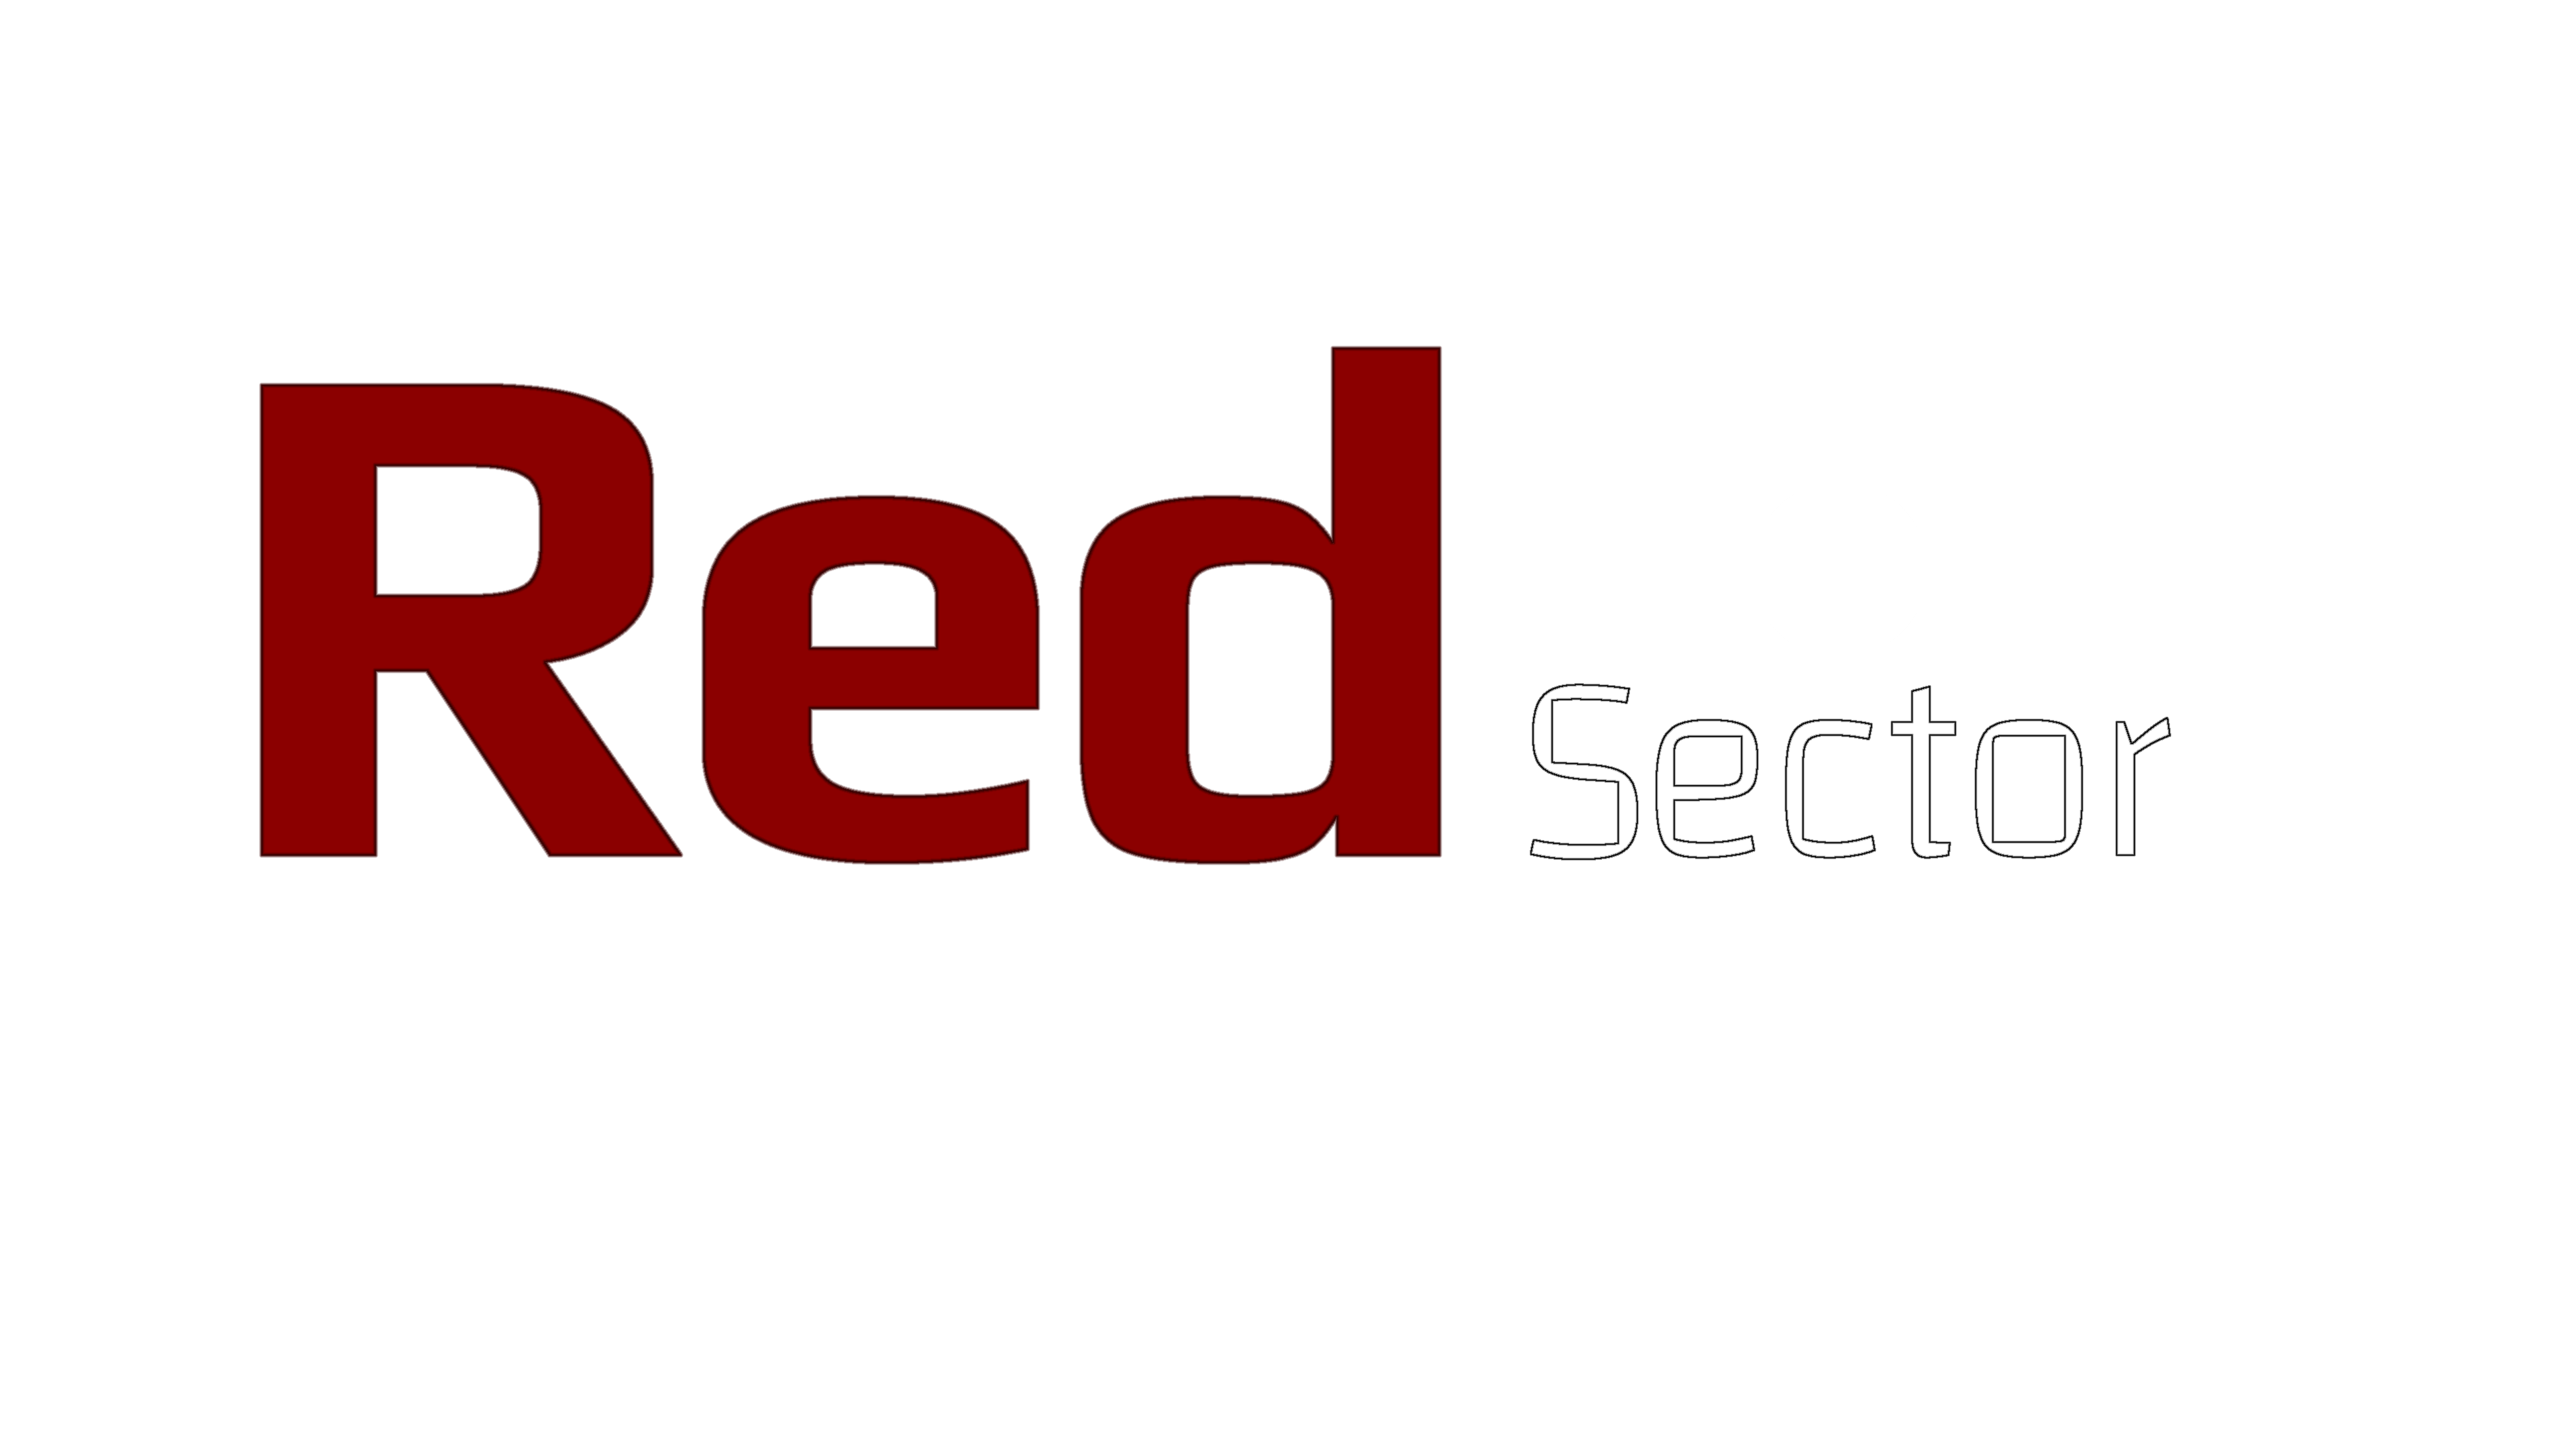 Red Sector